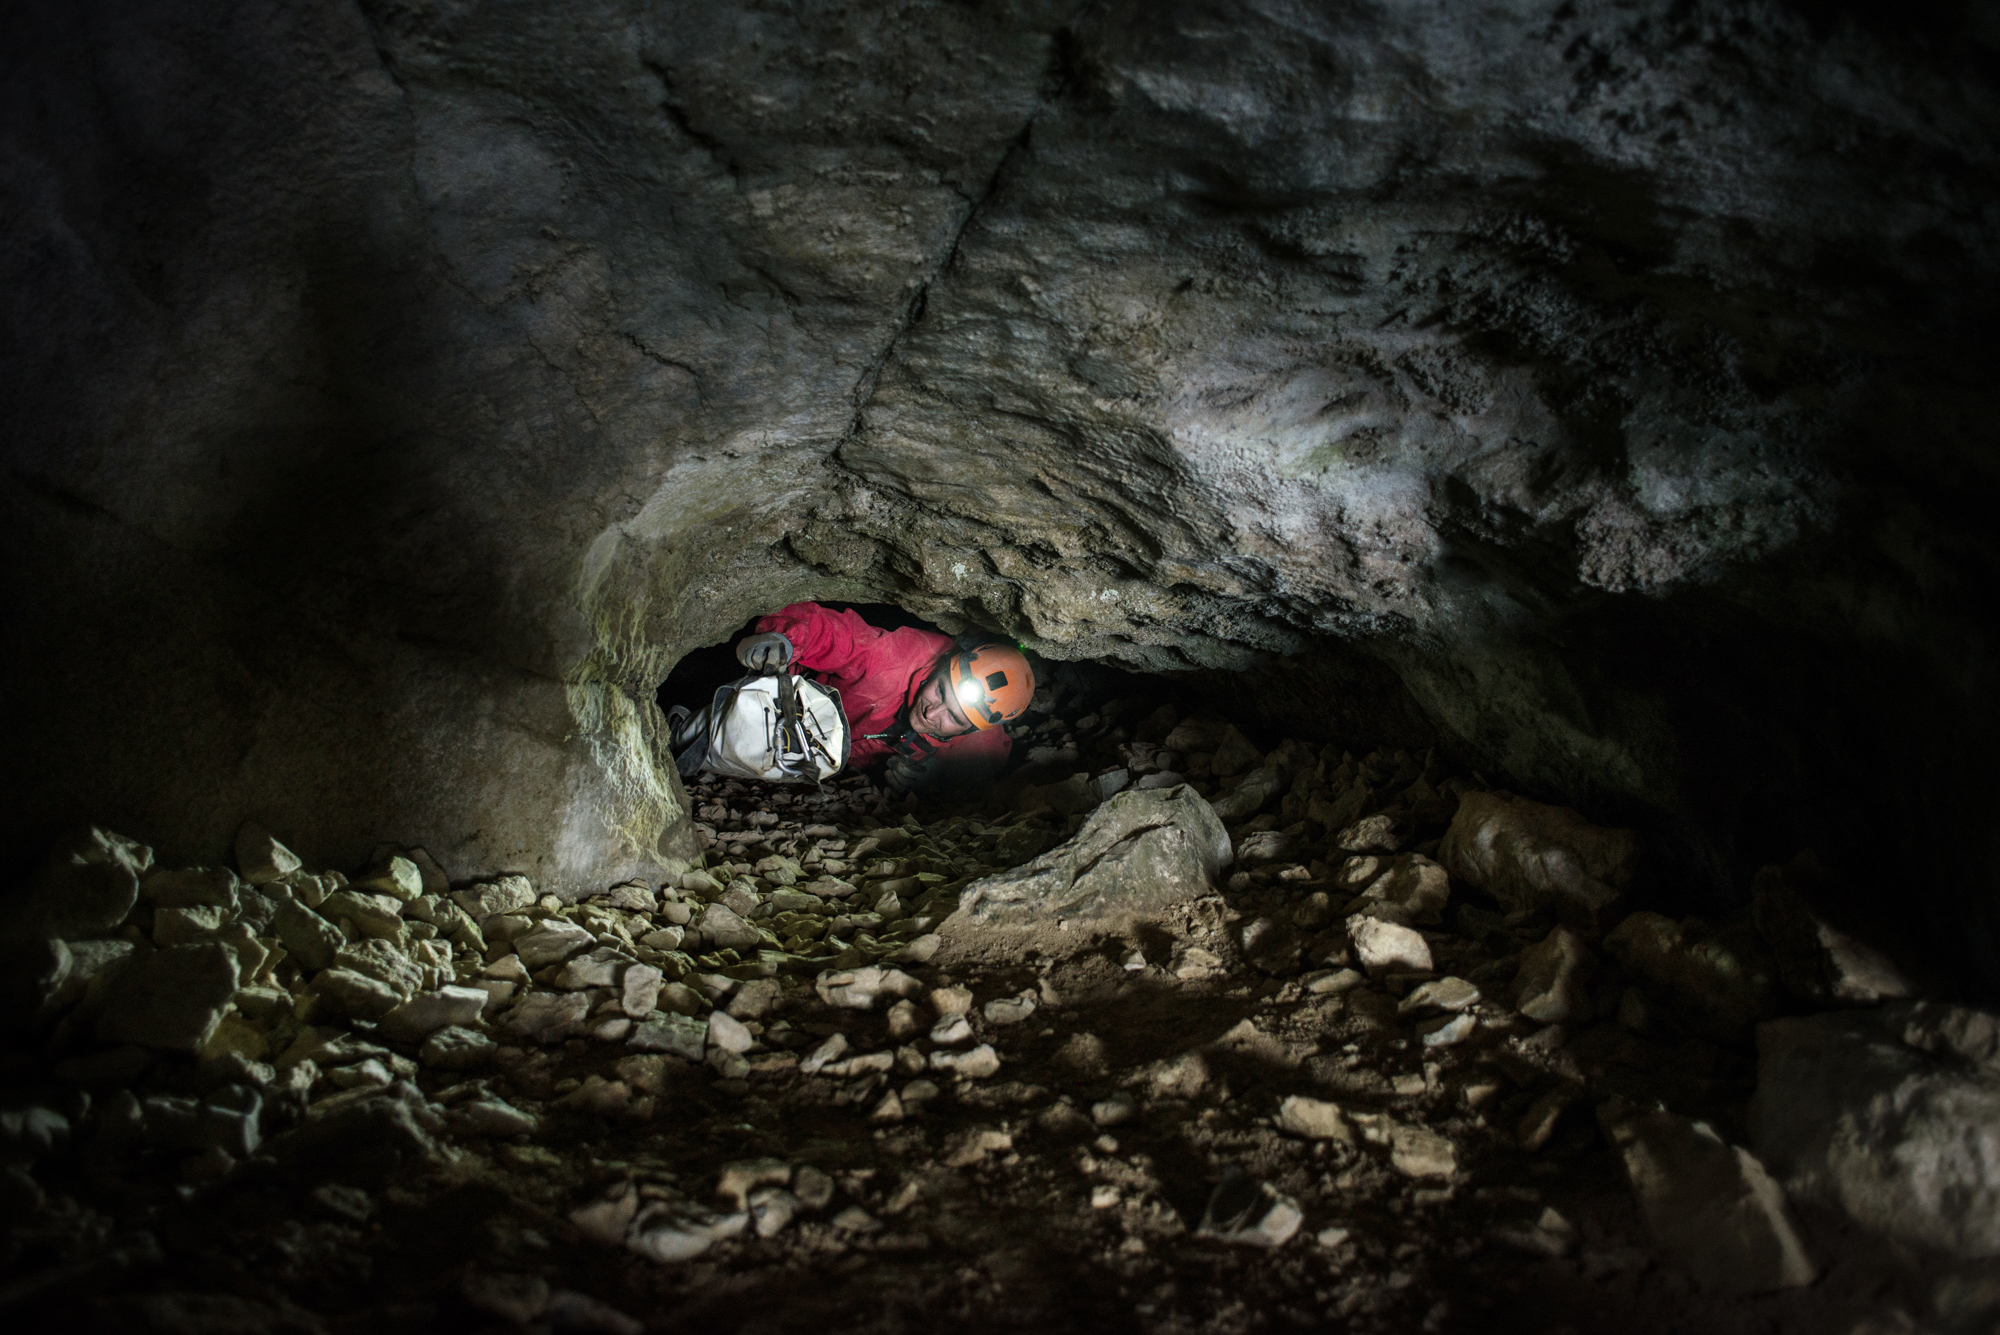 Mel Nickerson-Caving Bulmer DSC_0715 EDIT 2019.jpg